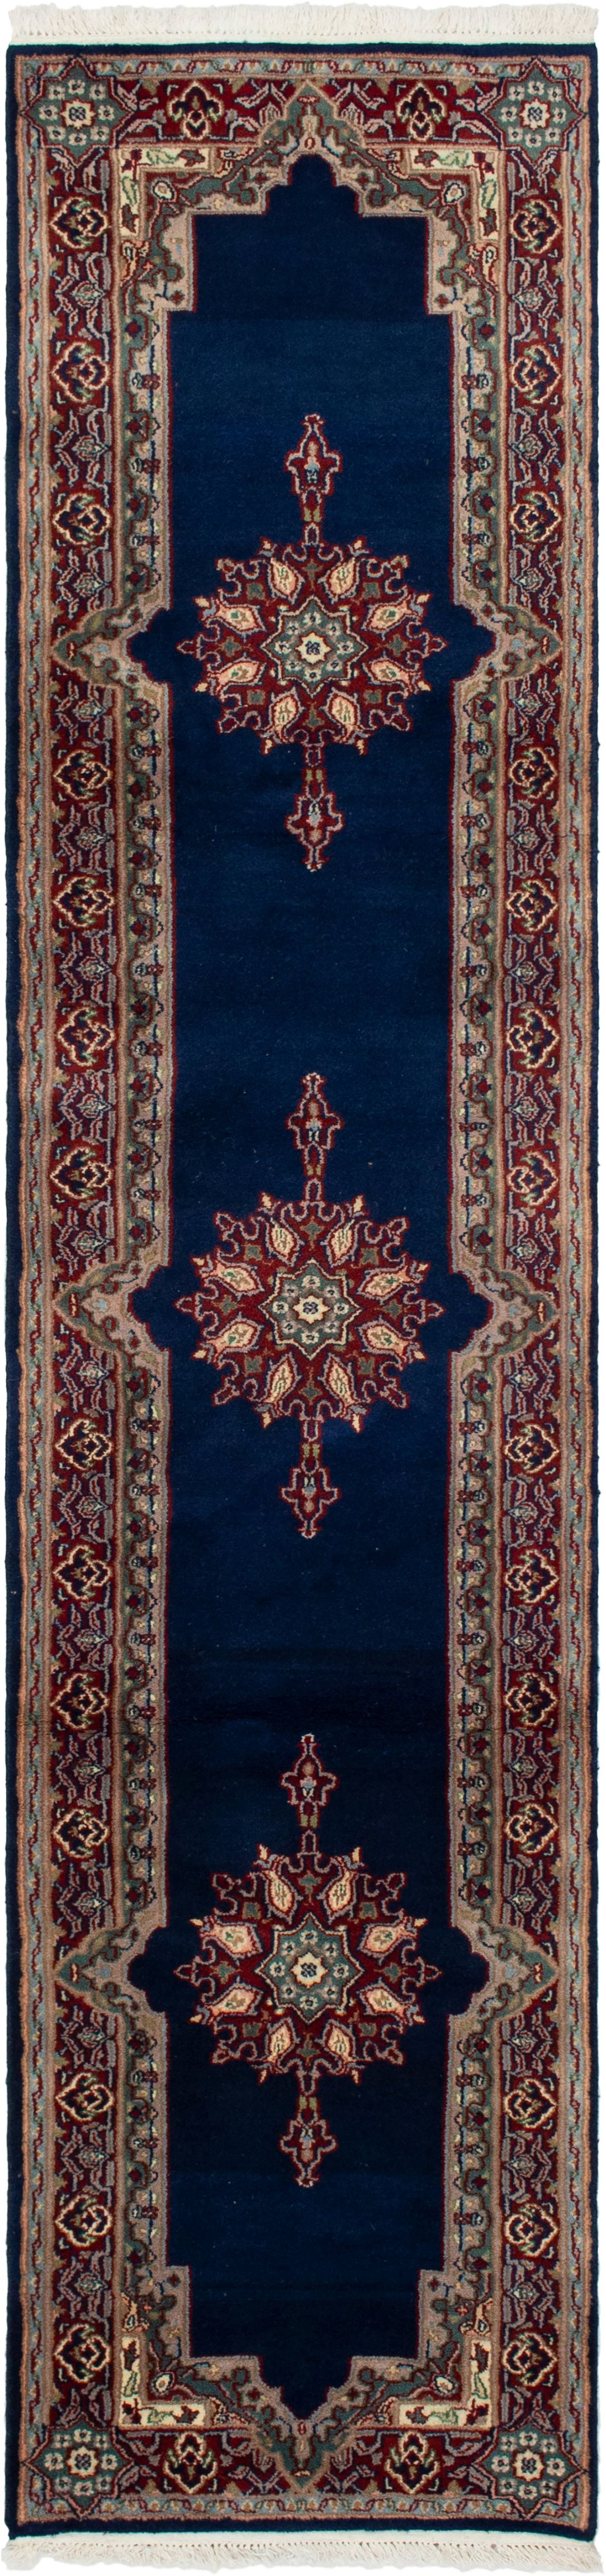 """Hand-knotted Hereke Navy Blue Wool Rug 2'4"""" x 10'2"""" Size: 2'4"""" x 10'2"""""""